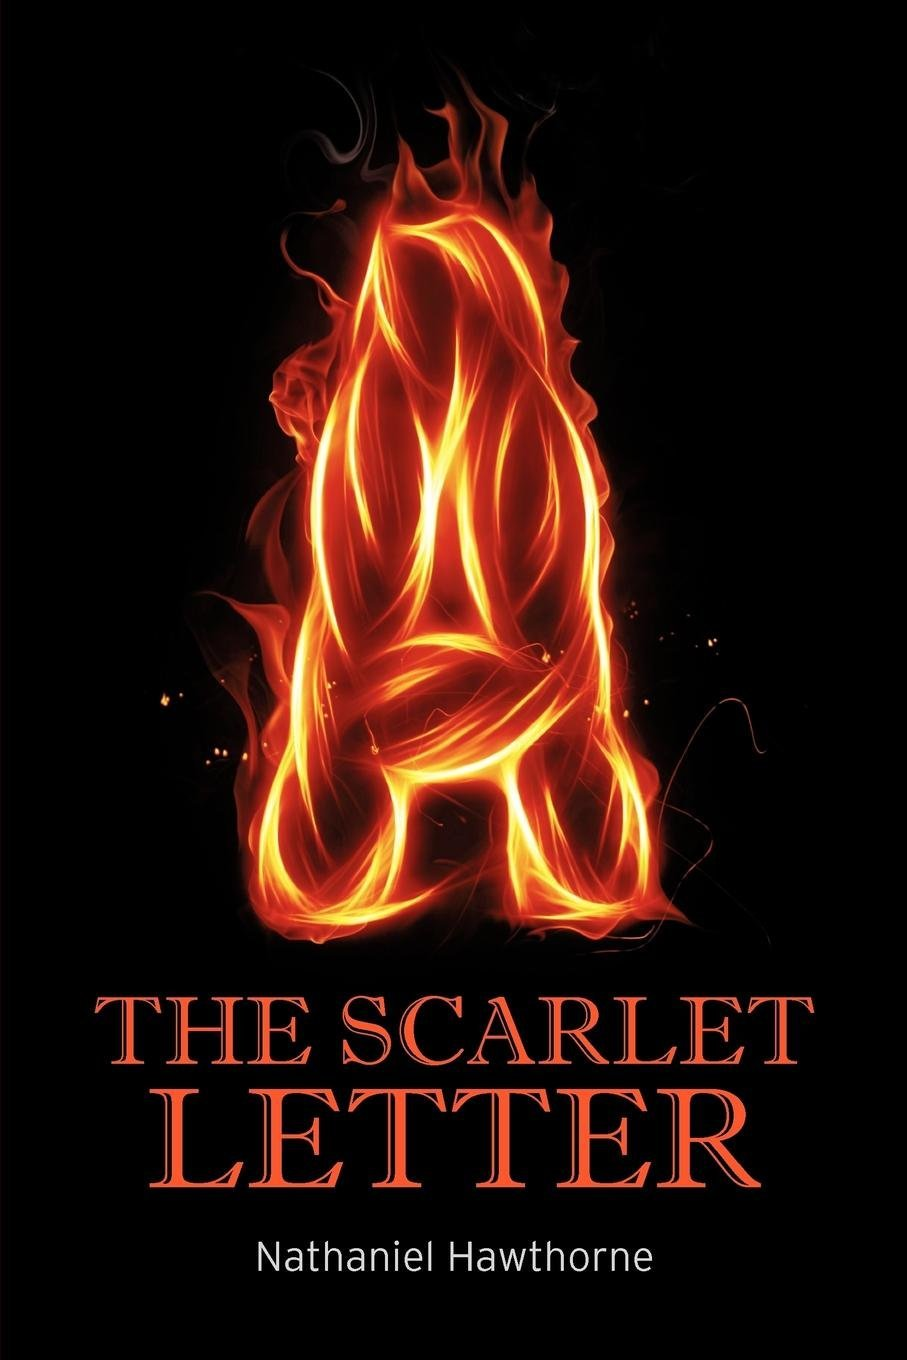 the scarlet letter by hawthorne essay A+ student essay is the scarlet letter a feminist novel although the scarlet letter was written in 1850, long before the emergence of what we now refer to as feminism, the novel amounts to a spirited, pre-feminist defense of women and women's rightsalthough modern readers might not immediately identify the tormented, cringing, sometimes self-loathing hester prynne as a feminist icon.